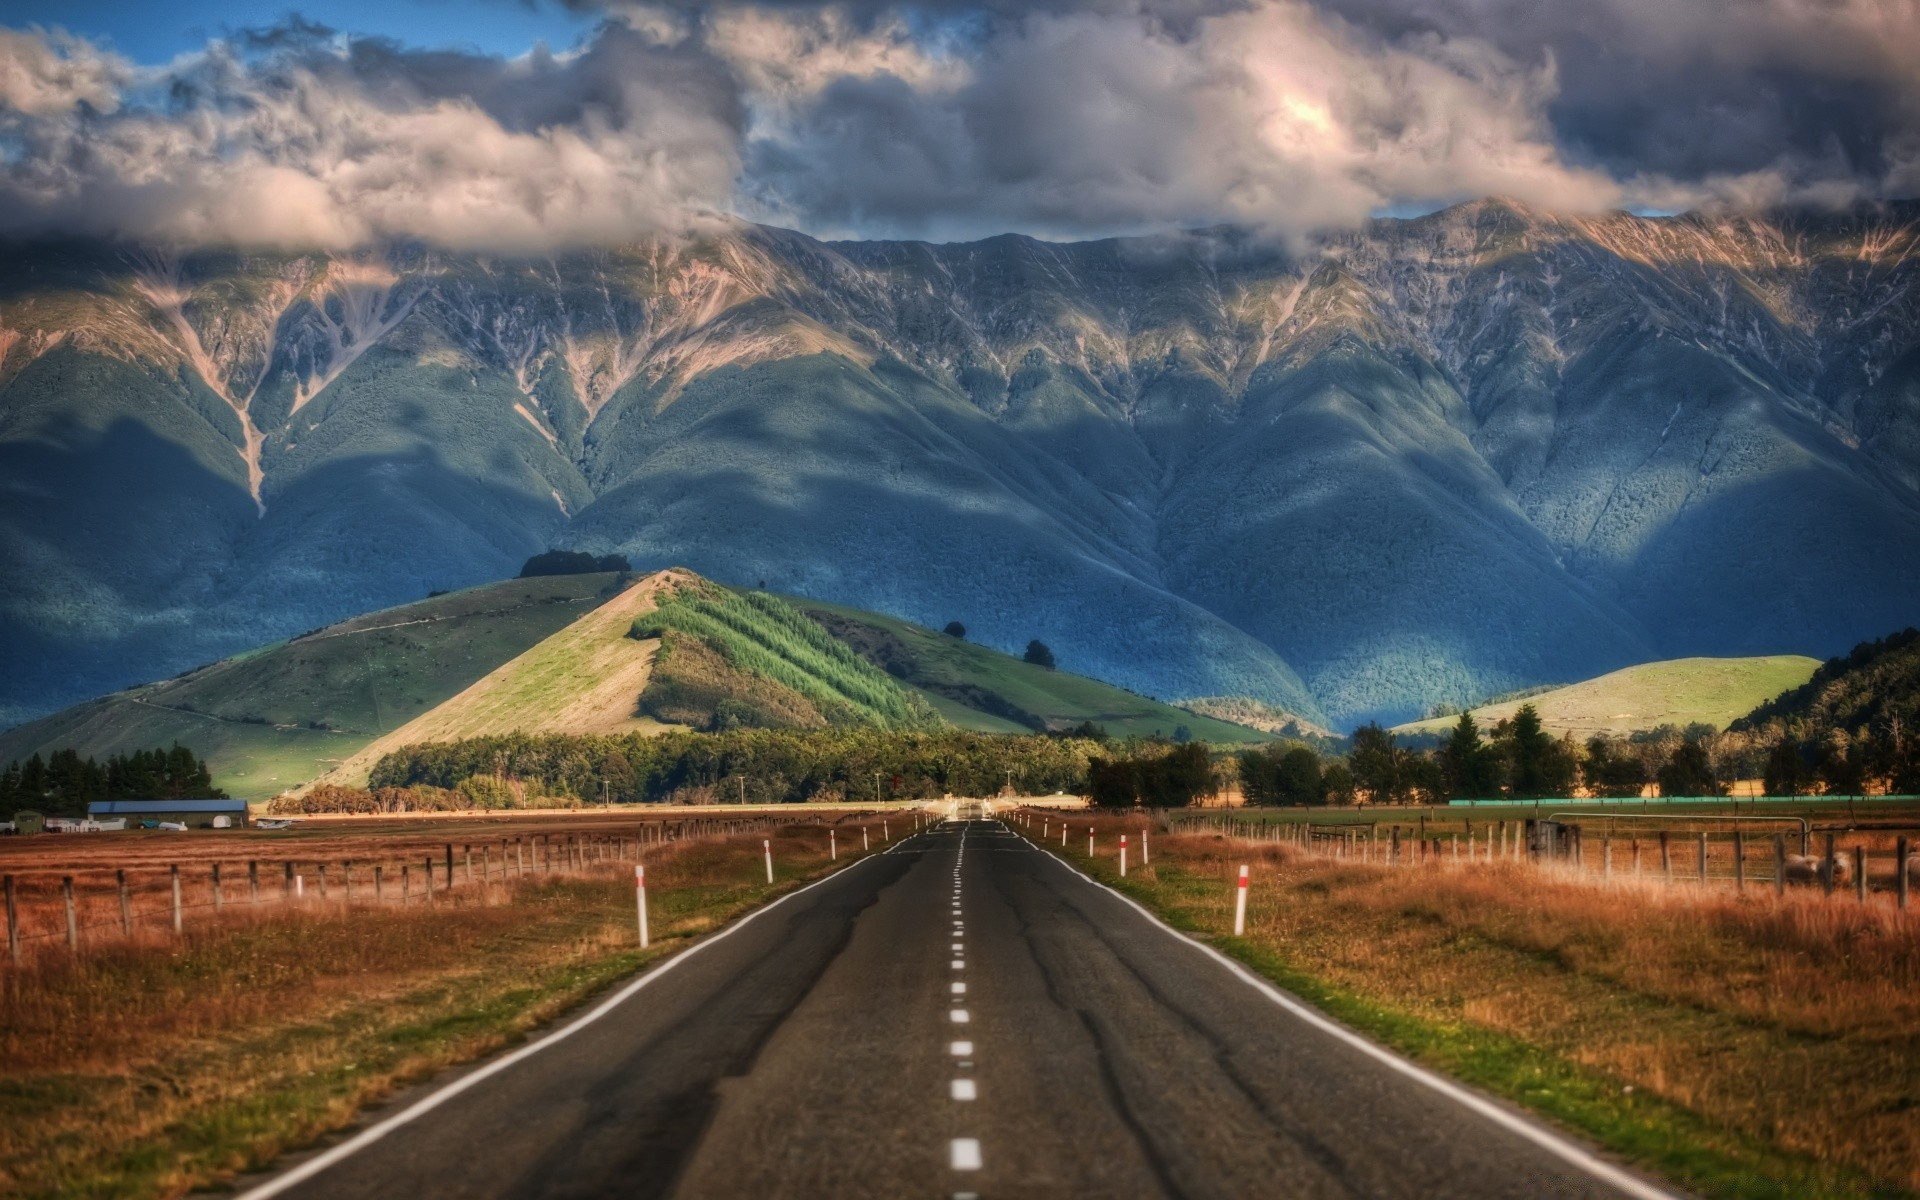 Australia And Oceania Travel Road Mountain Sky Landscape - New Zealand Road Mountains - HD Wallpaper